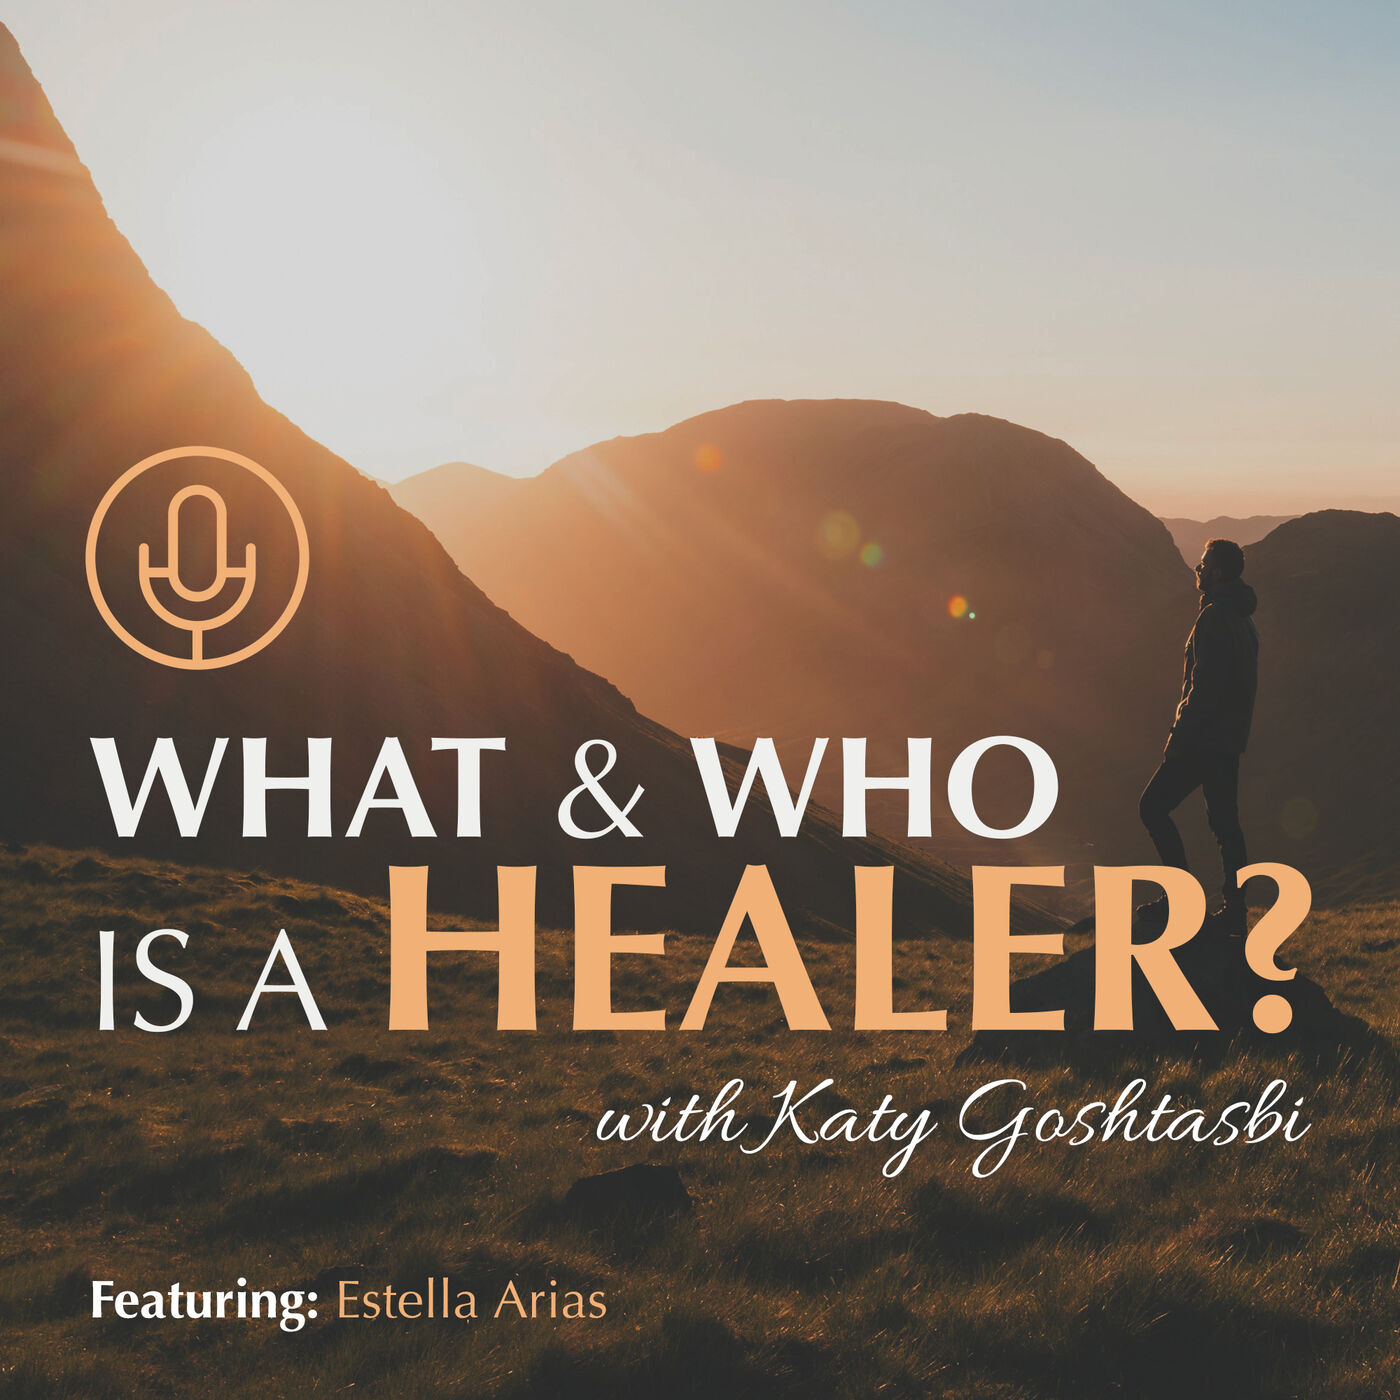 What & Who Is a Healer? Interview with Estella Arias